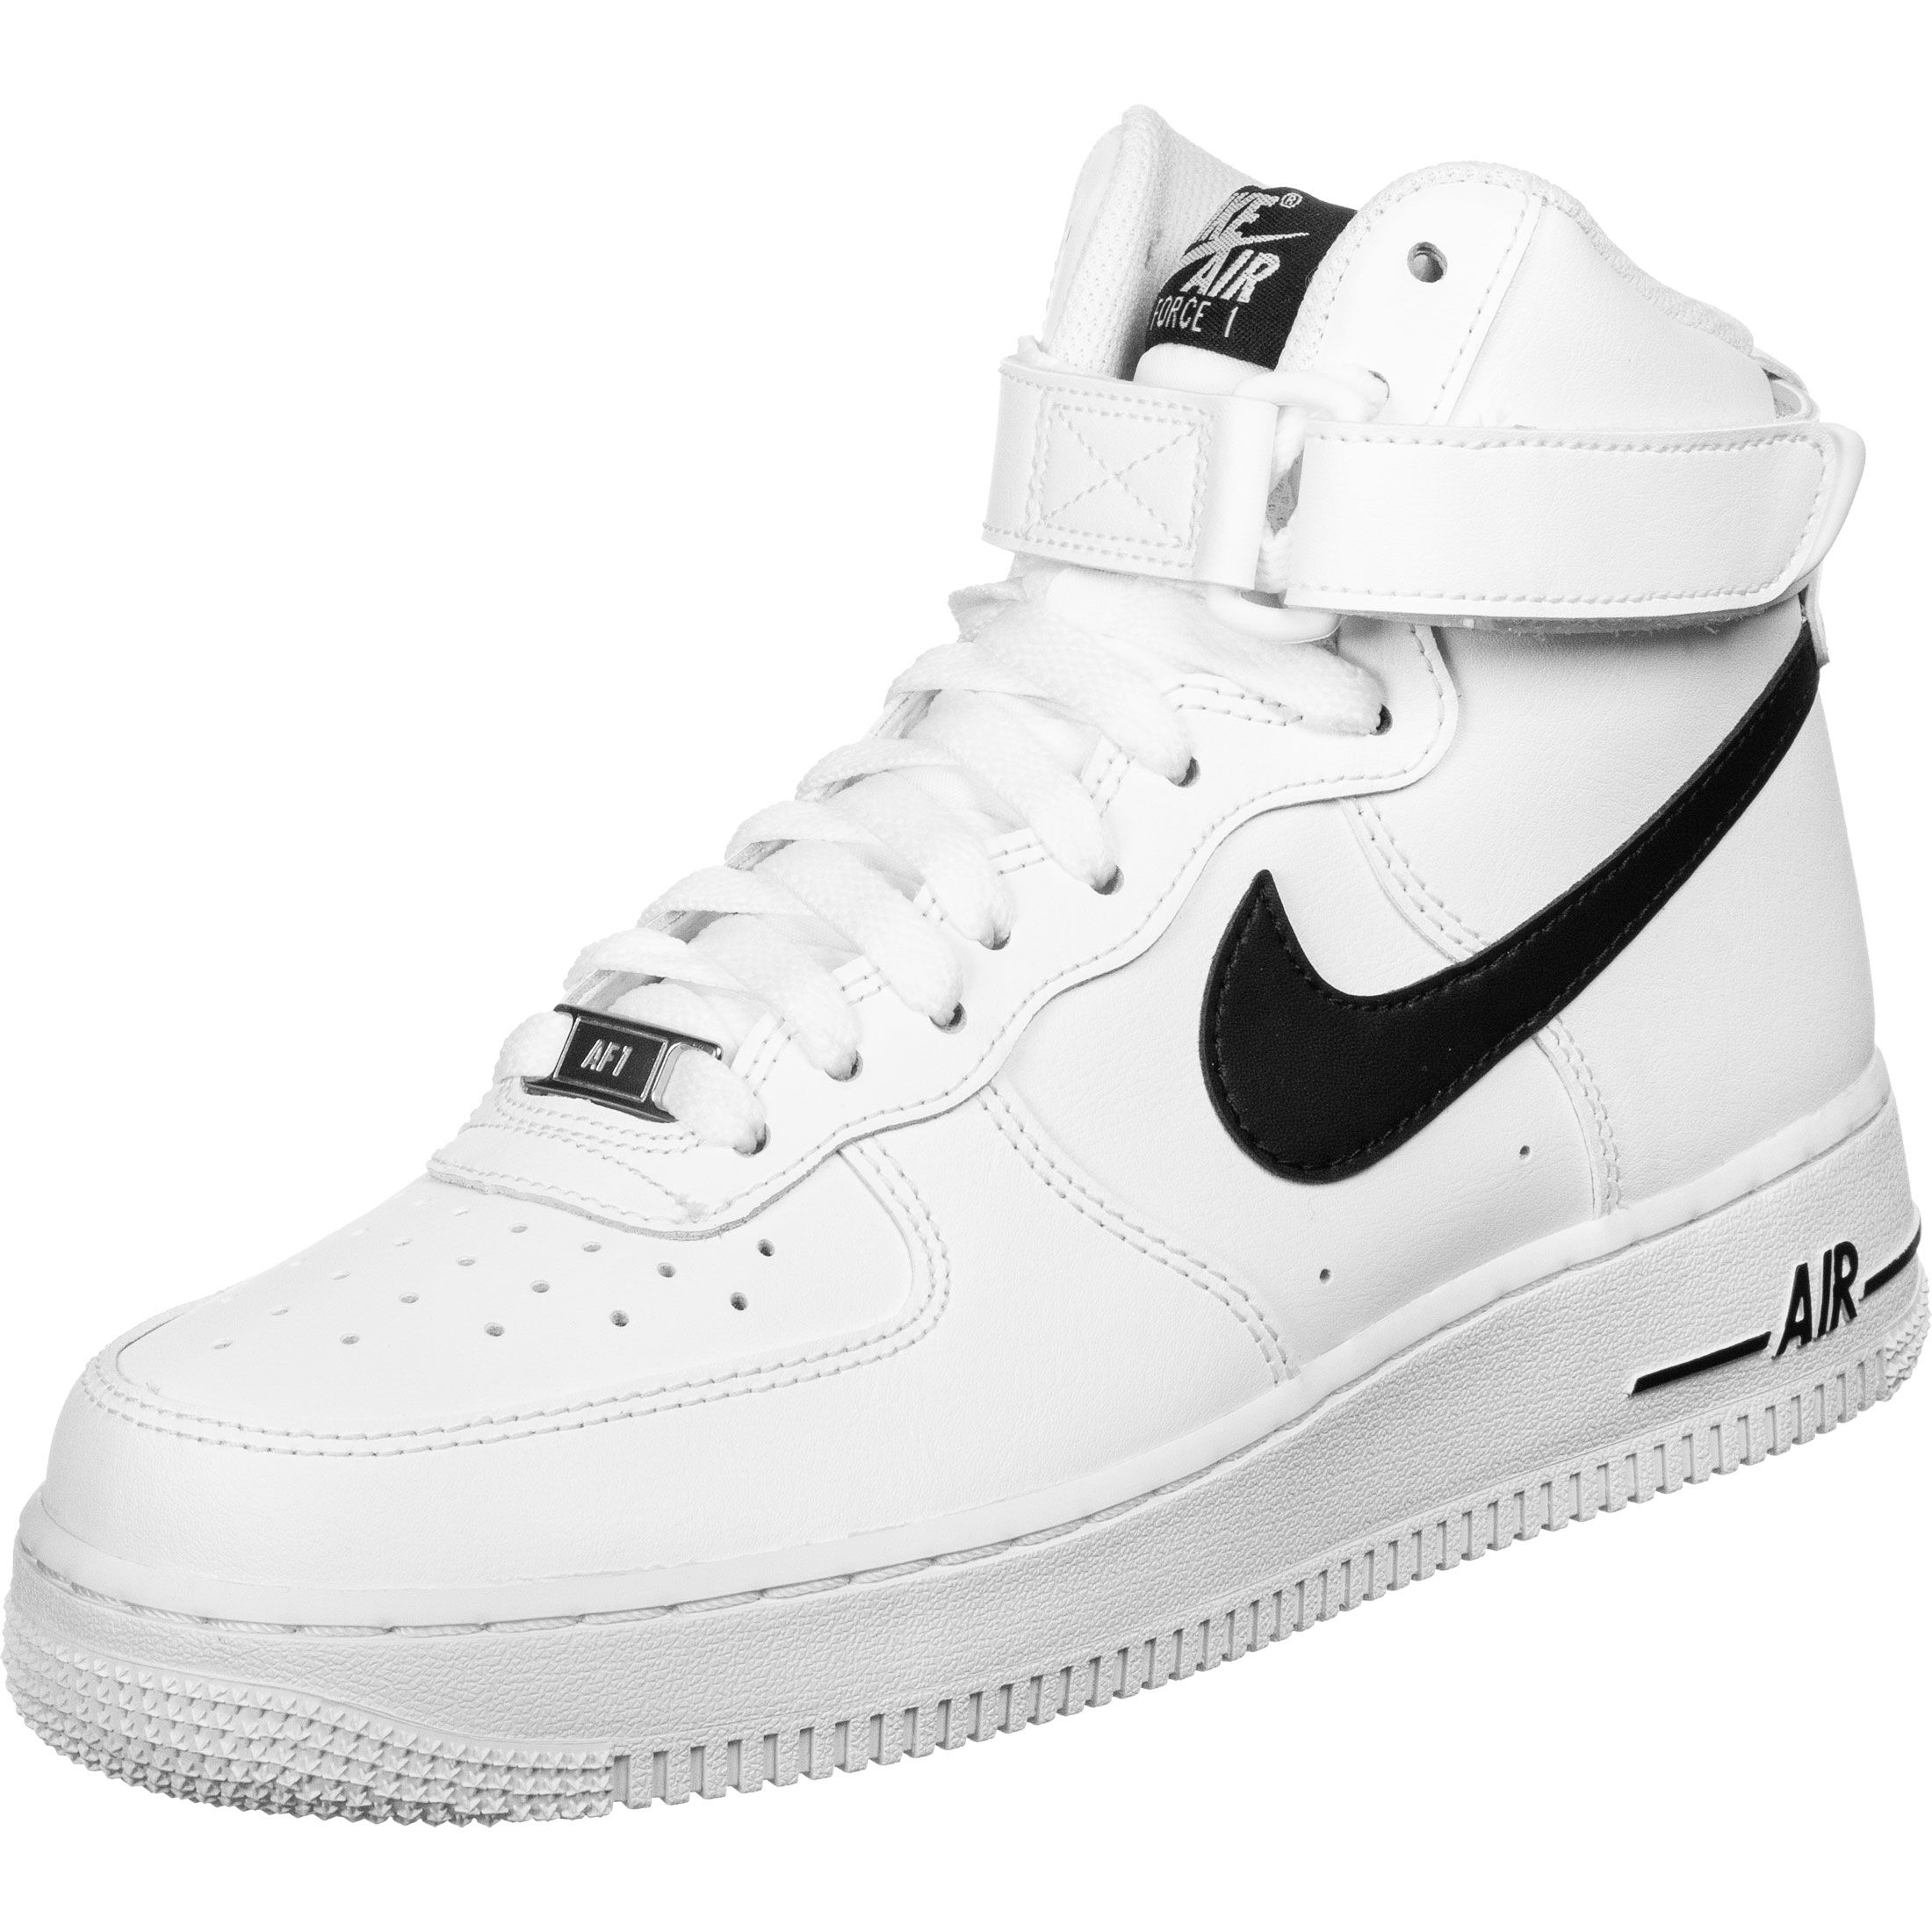 Nike Air Force 1 High 07 - Basketball at Stylefile